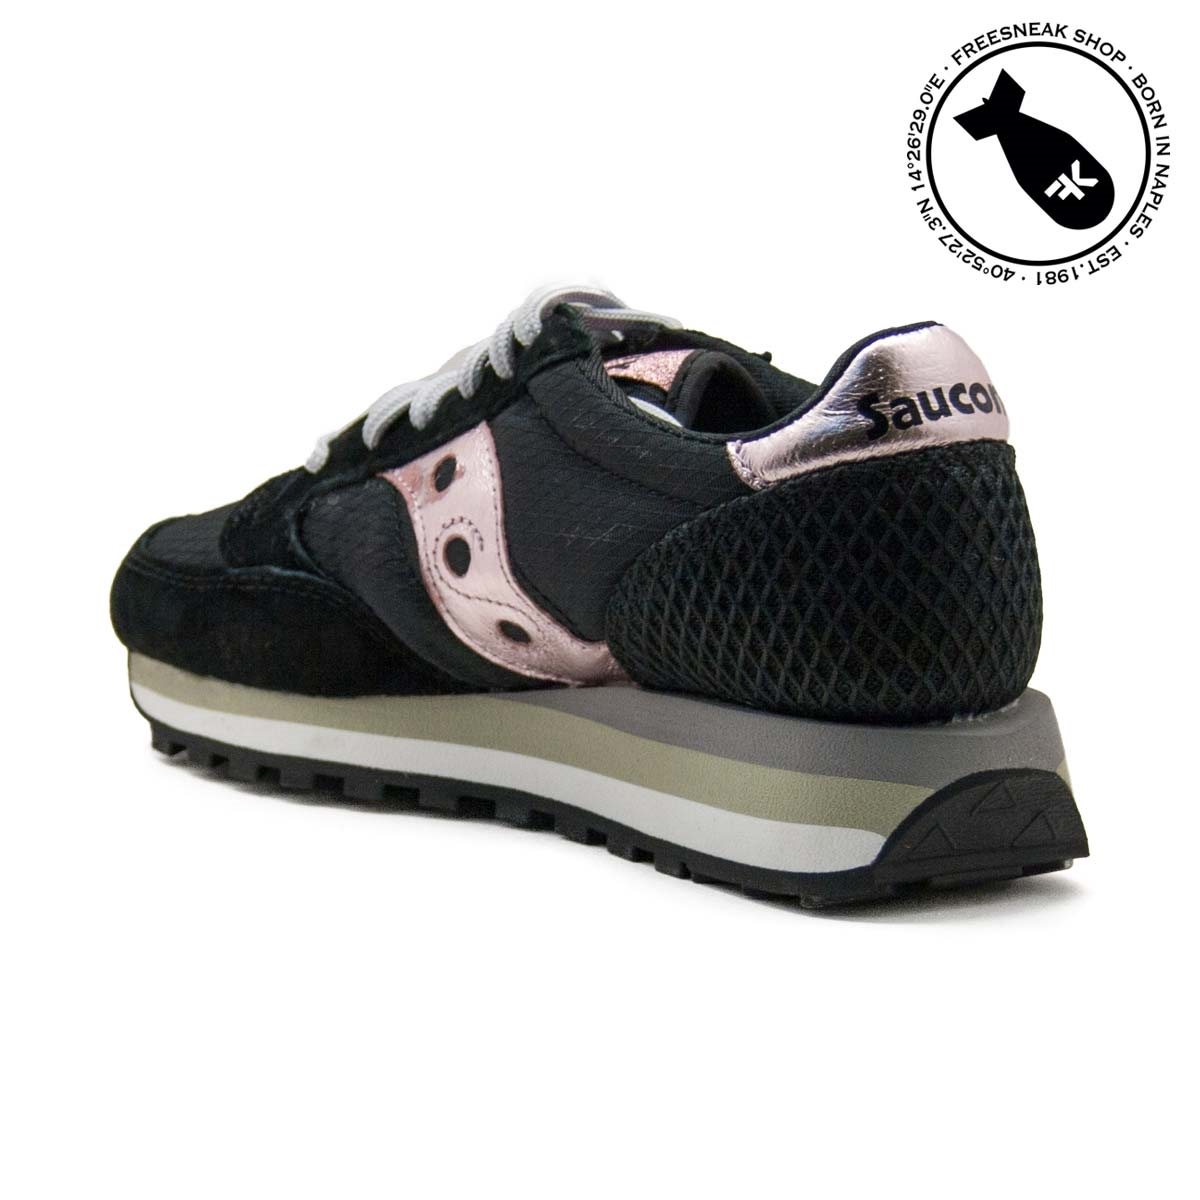 reputable site f1fac 5d9ac Saucony Jazz Original Triple Limited Edition Black S60364-03